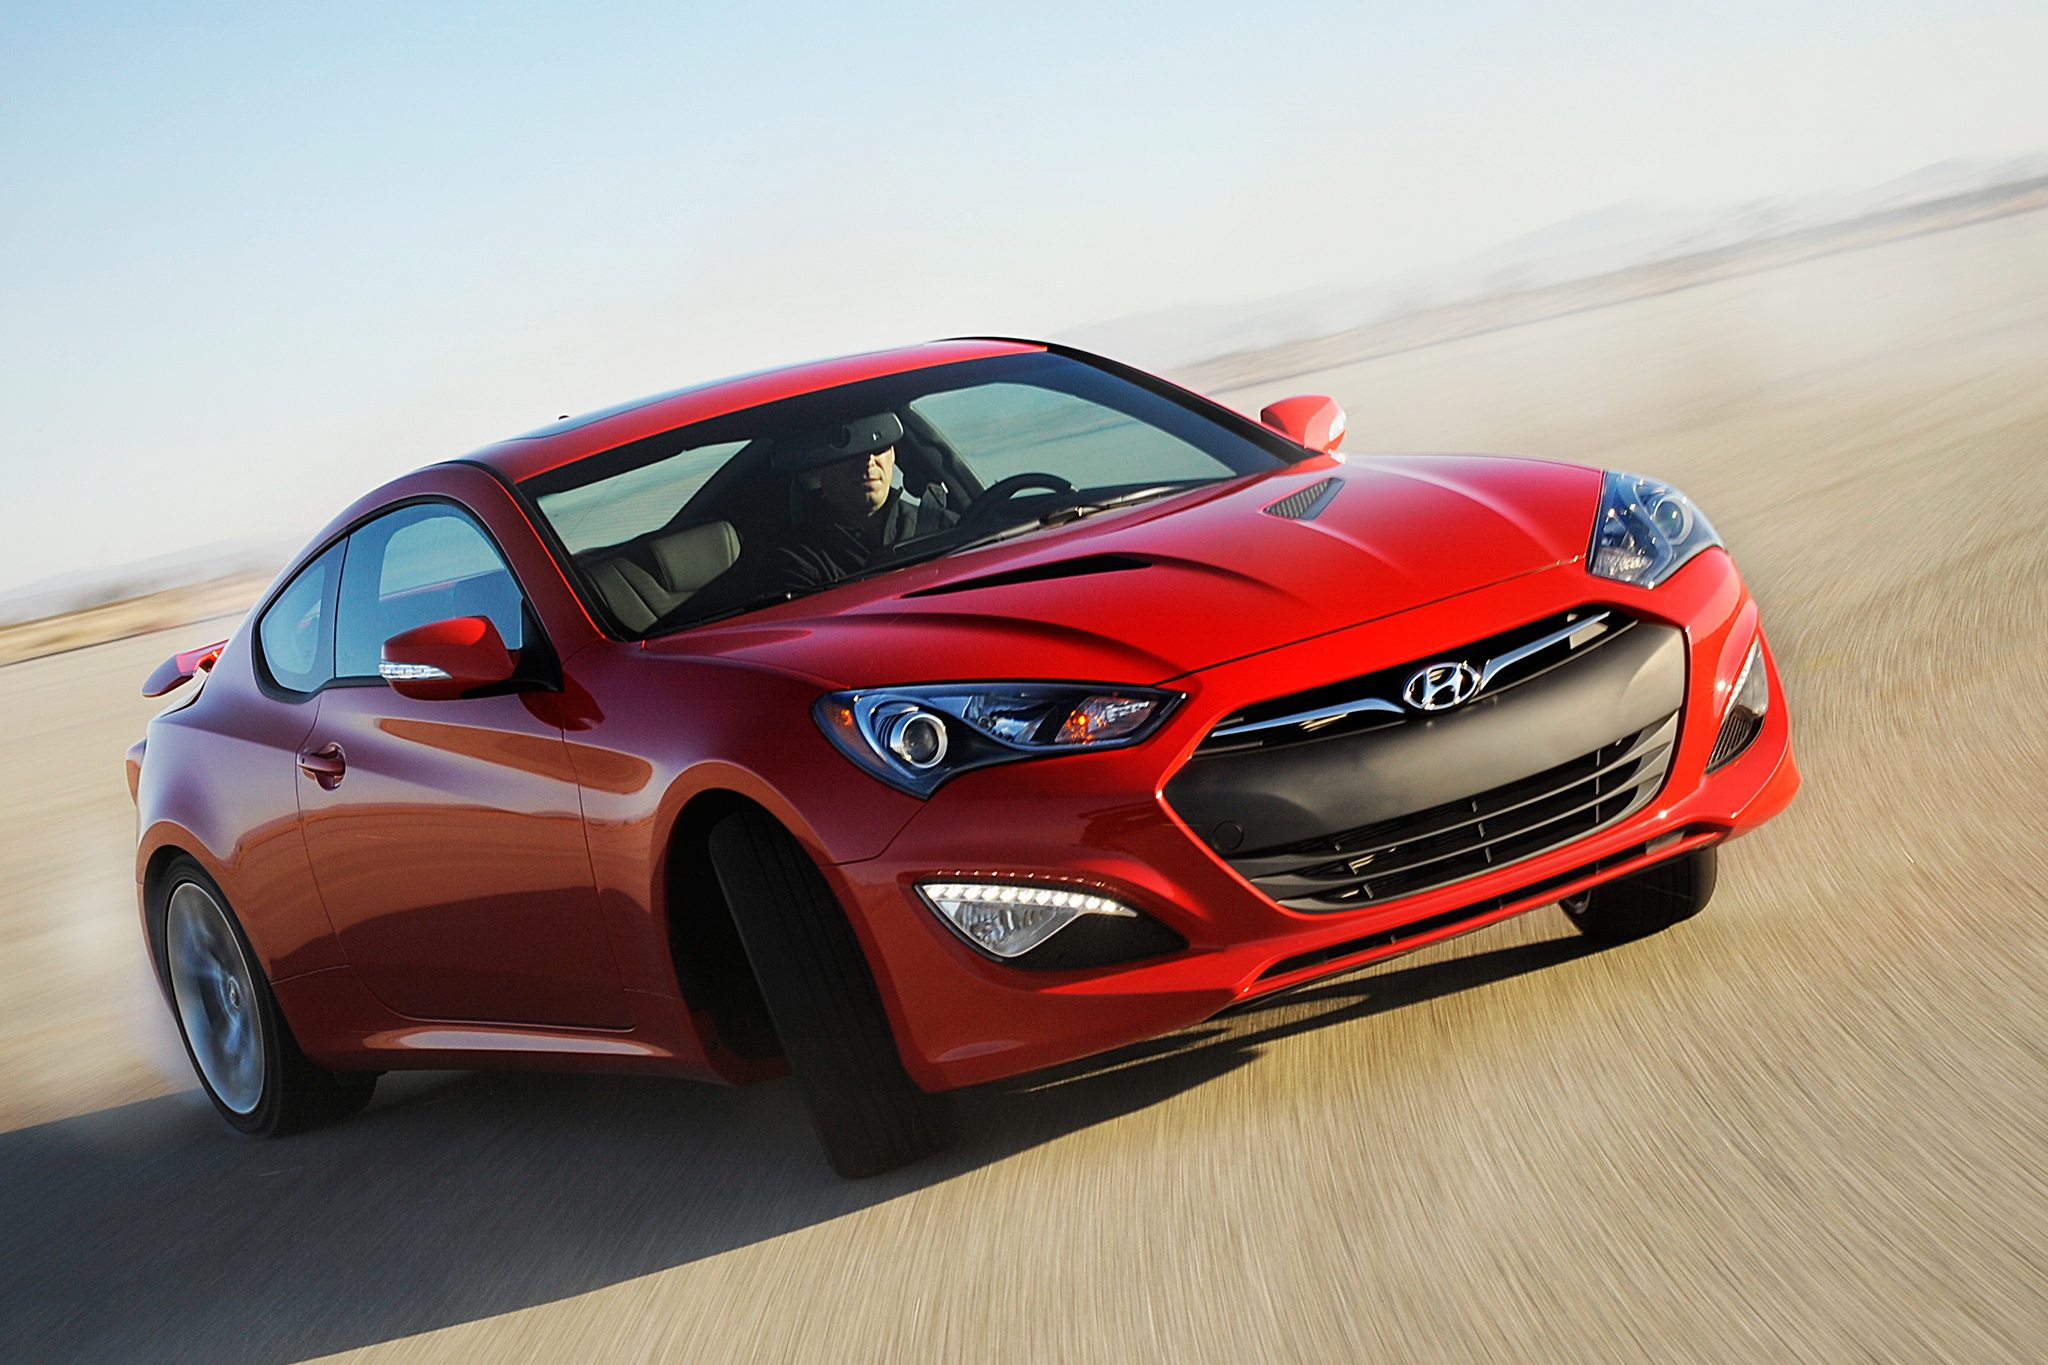 hd wallpapers car wide pixel and genesis eu images hyundai wallpaper